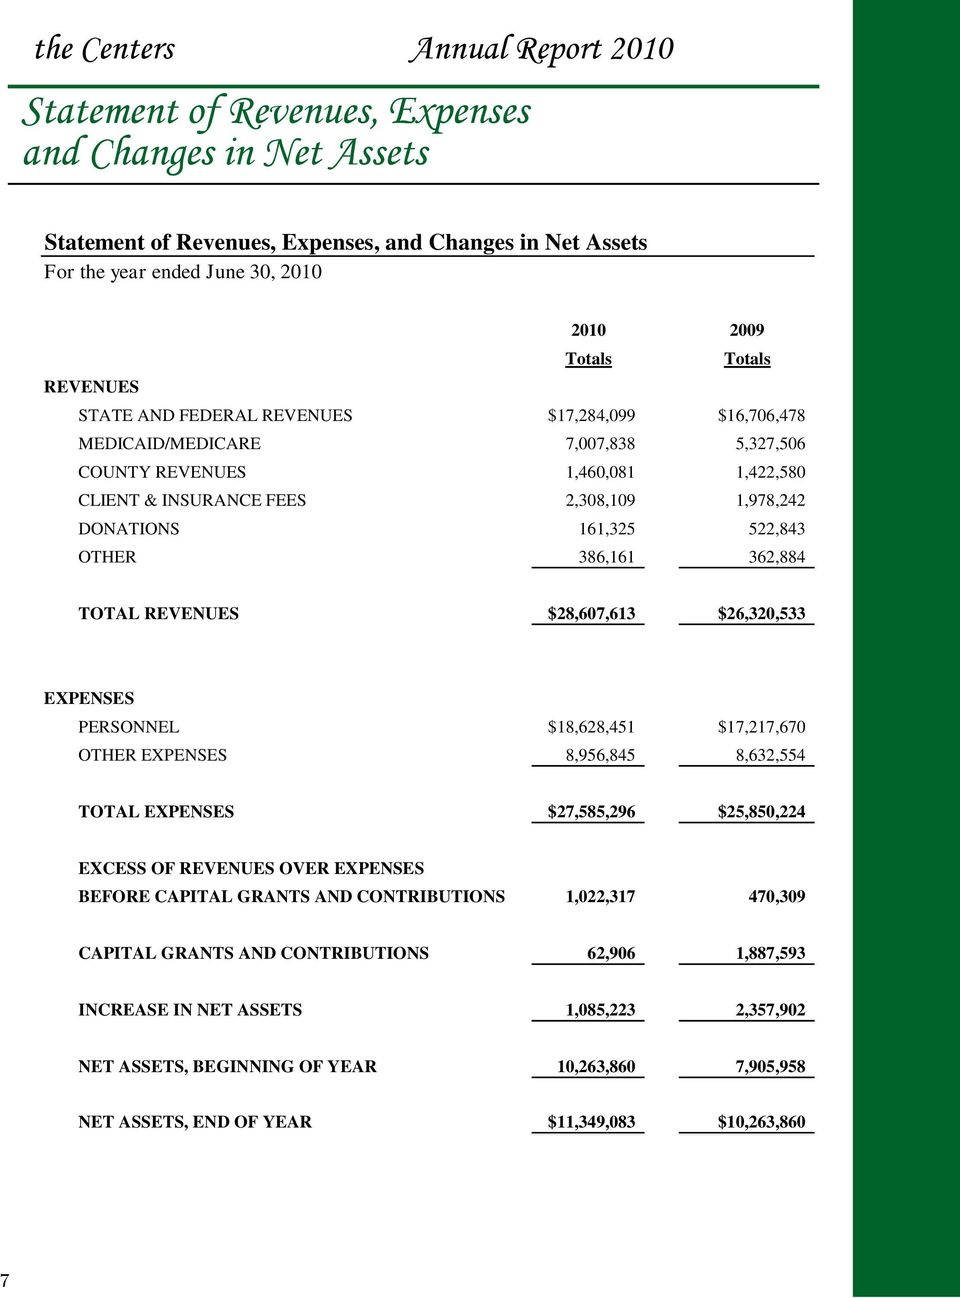 362,884 TOTAL REVENUES $28,607,613 $26,320,533 EXPENSES PERSONNEL $18,628,451 $17,217,670 OTHER EXPENSES 8,956,845 8,632,554 TOTAL EXPENSES $27,585,296 $25,850,224 EXCESS OF REVENUES OVER EXPENSES